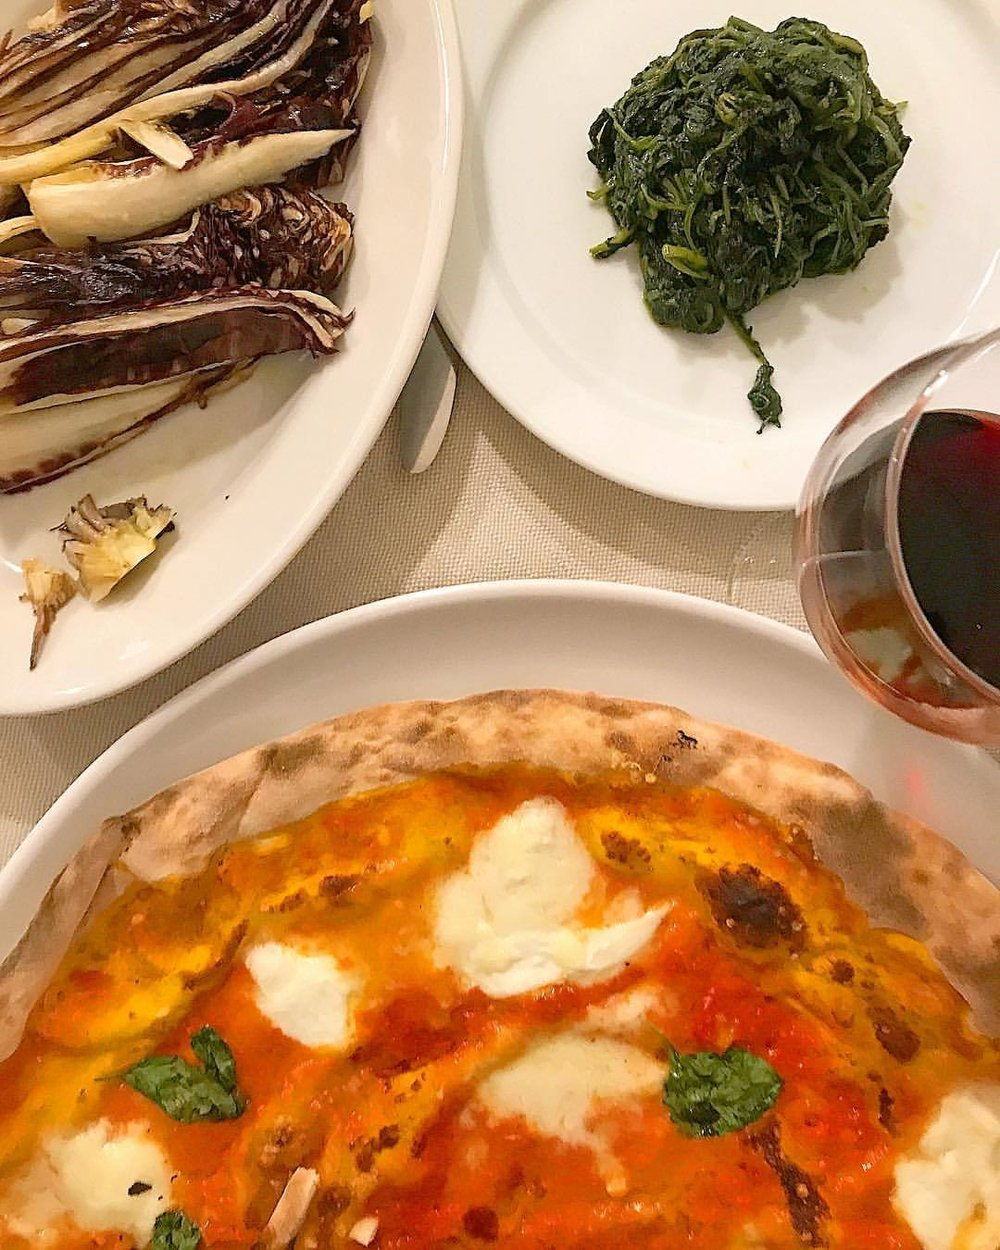 Ultra-thin crust Margherita pie with dreamy globs of buffalo mozzarella, grilled radicchio brushed with good oil, steamed chicories with fresh spicy garlic, and a bottle of better-than-it-has-to-be, local Sangiovese.  -  #italy #tuscany #trattoria #pizza #garlicisamiracledrug (at Ristorante Pinocchio Frascati Roma)